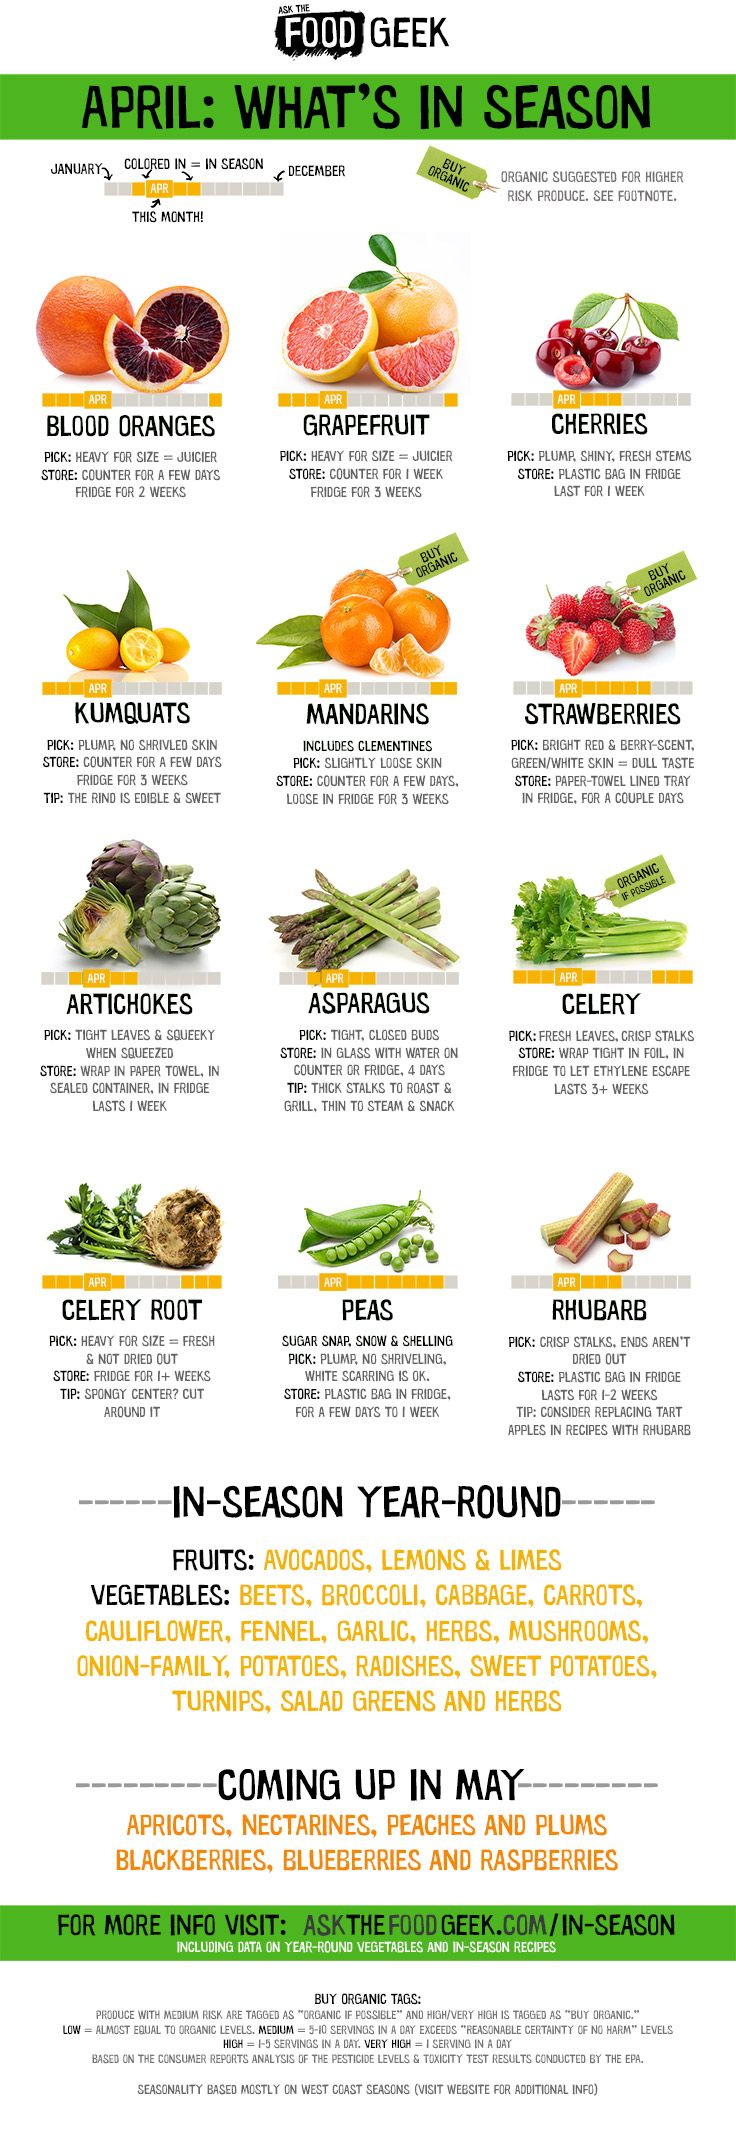 April Seasonal Produce Chart: 12 fruits & vegetables to eat this month - perfect for the farmers market. Plus spring recipes so you know what to eat in April. The recipes for April use ingredients that are all available that month :)